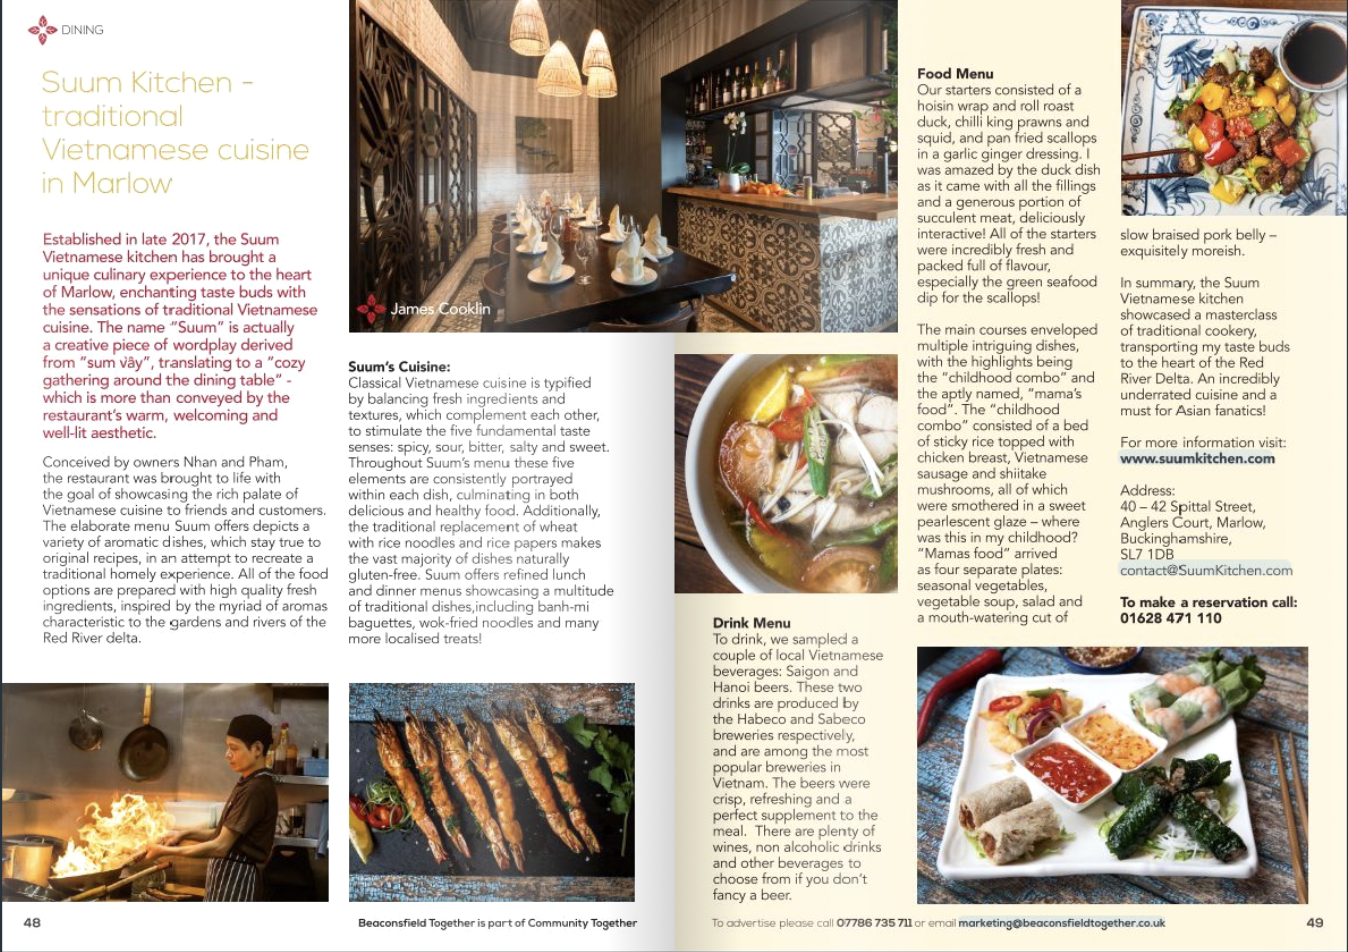 suum-kitchen-marlow-dining-review-beaconsfield-together